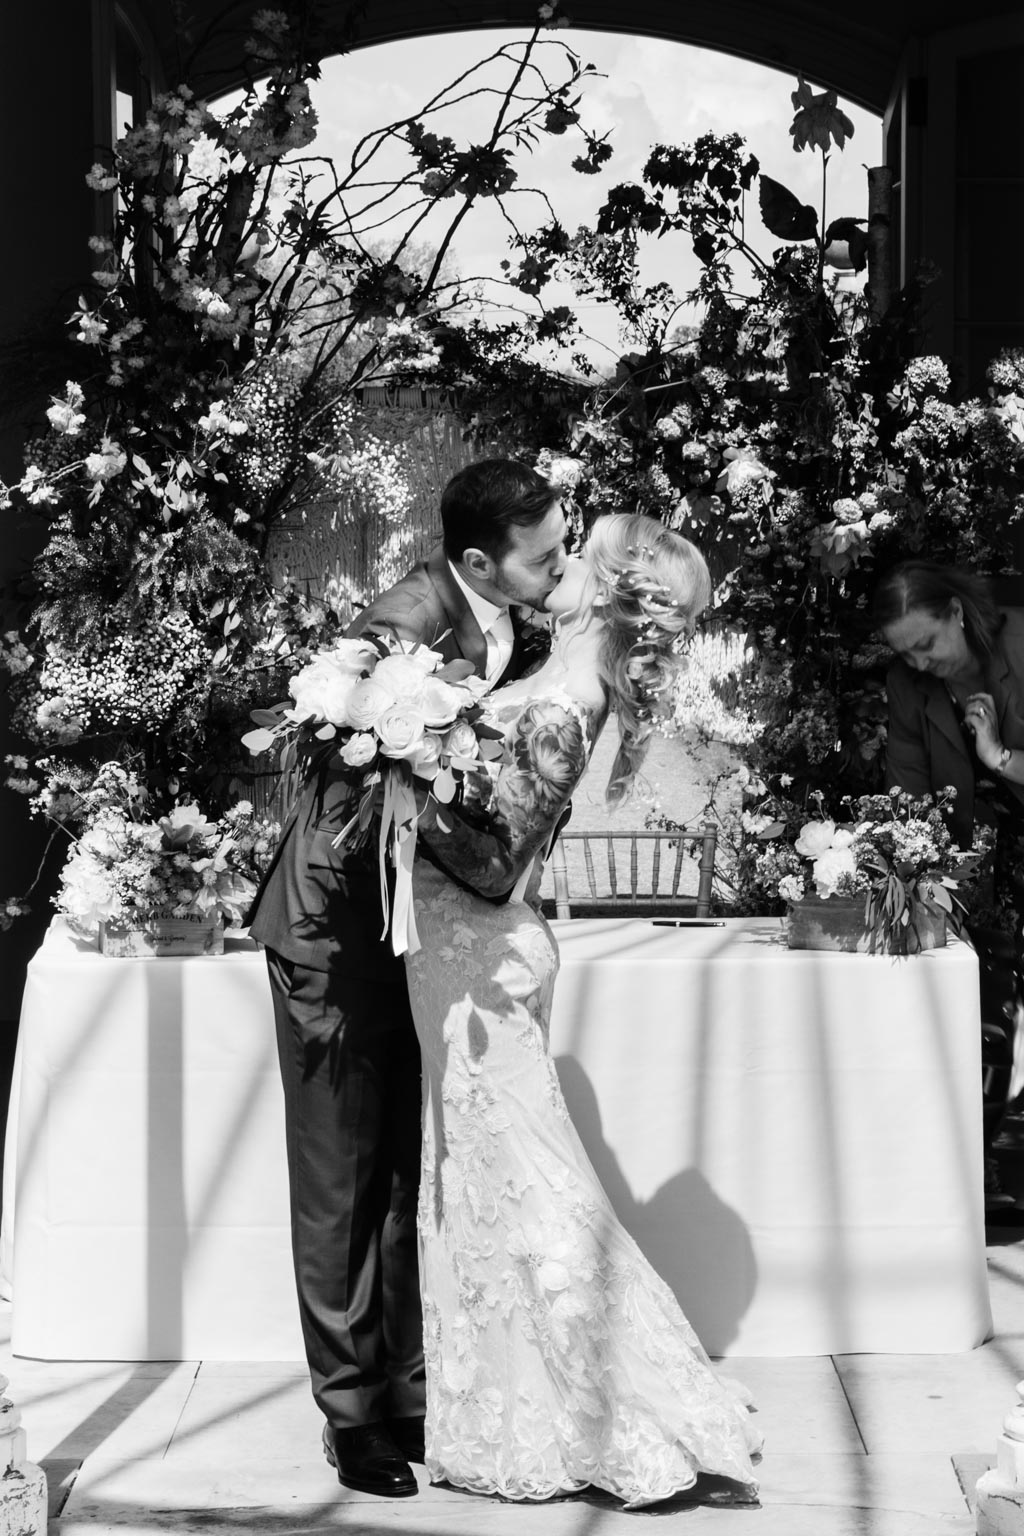 weddings at Chiswick House & Gardens